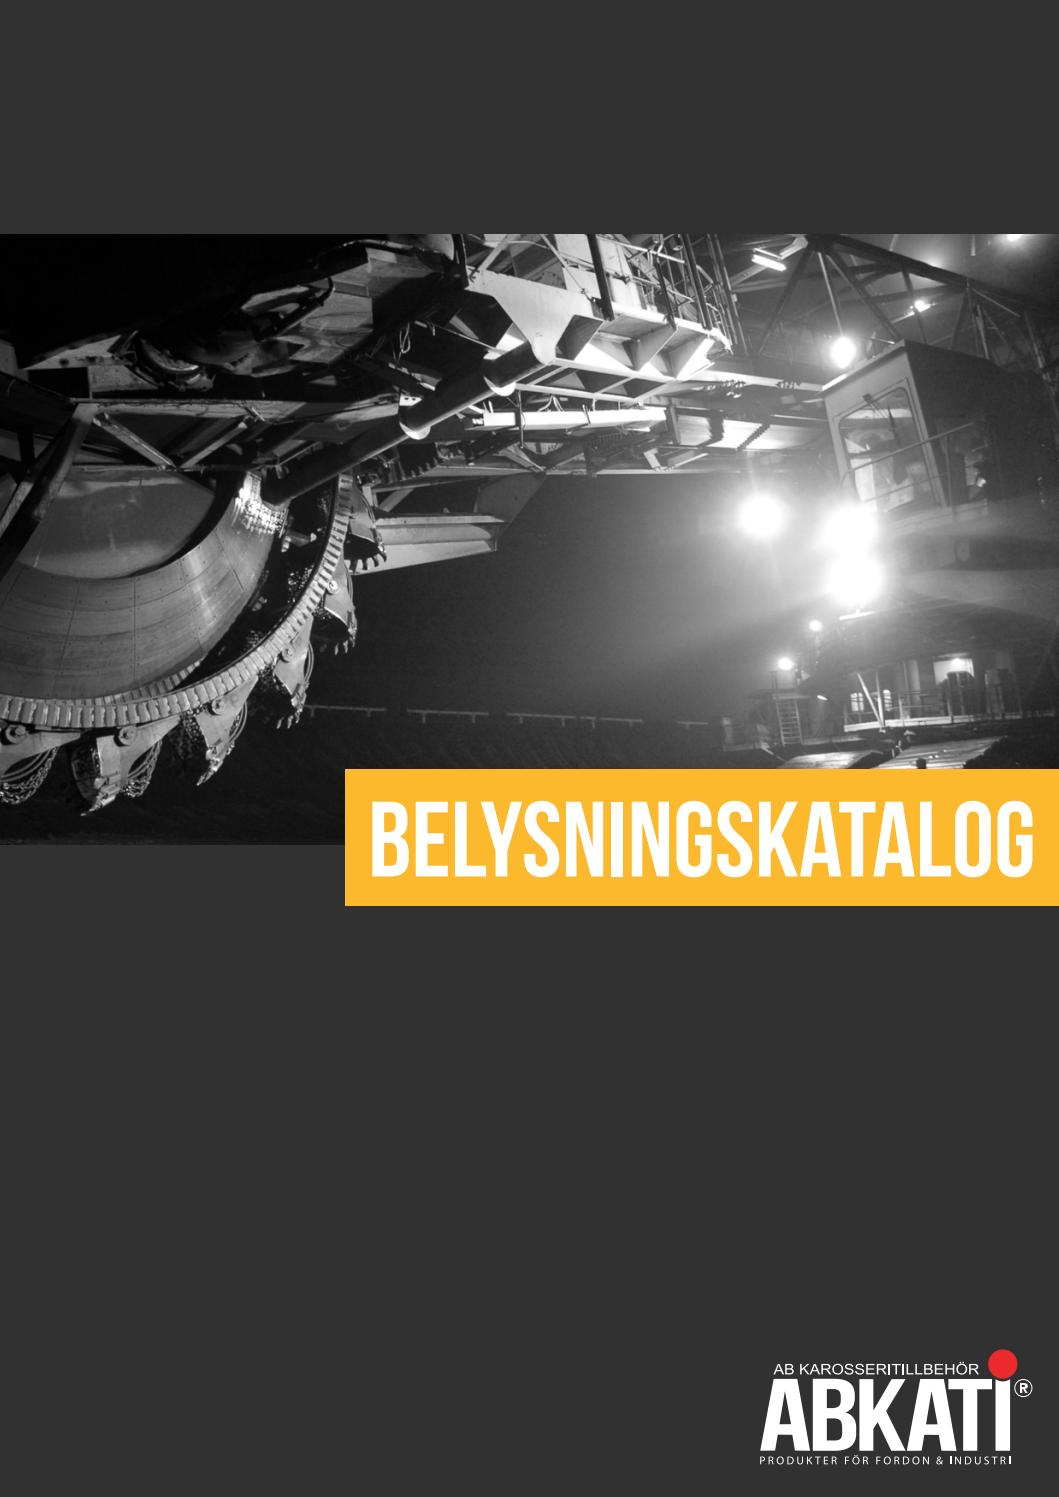 Let it light belysningskatalog by Jan Vigermyr - issuu